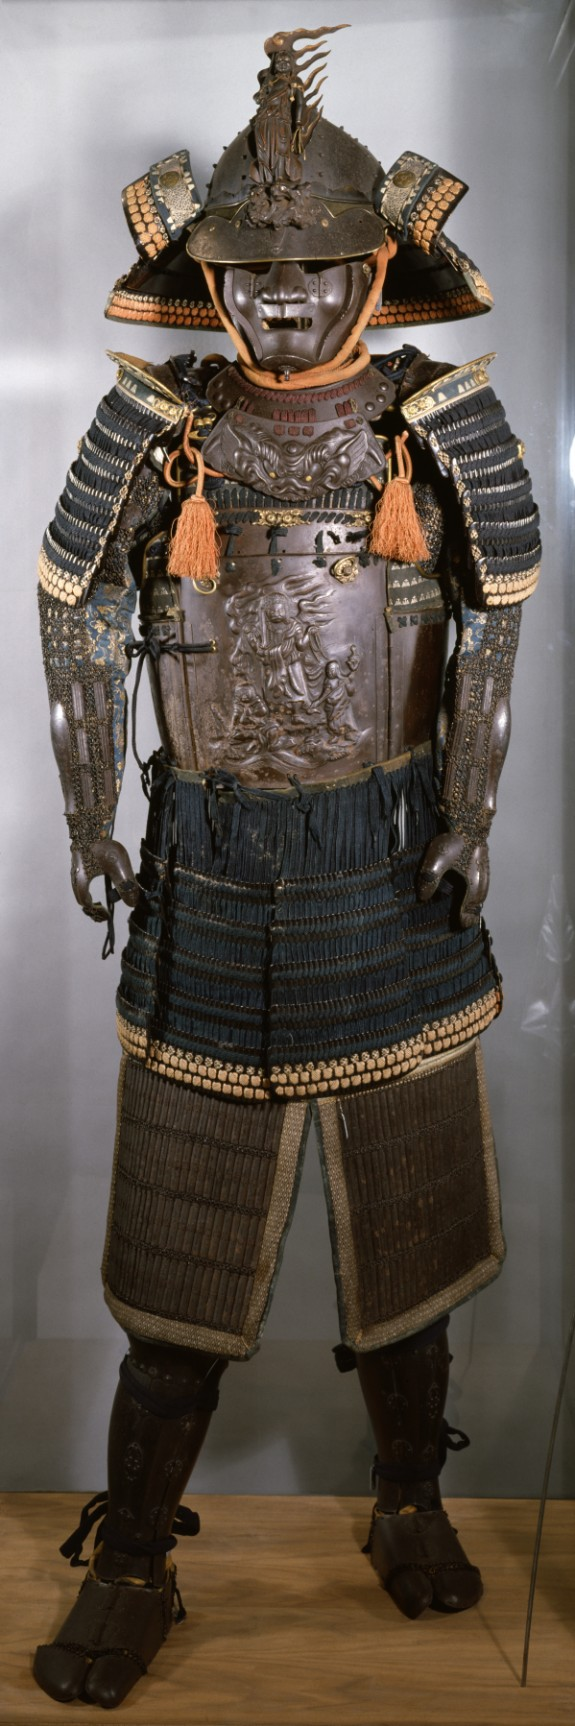 Suit of Armor with the Buddhist Deity Fudo Myo-o